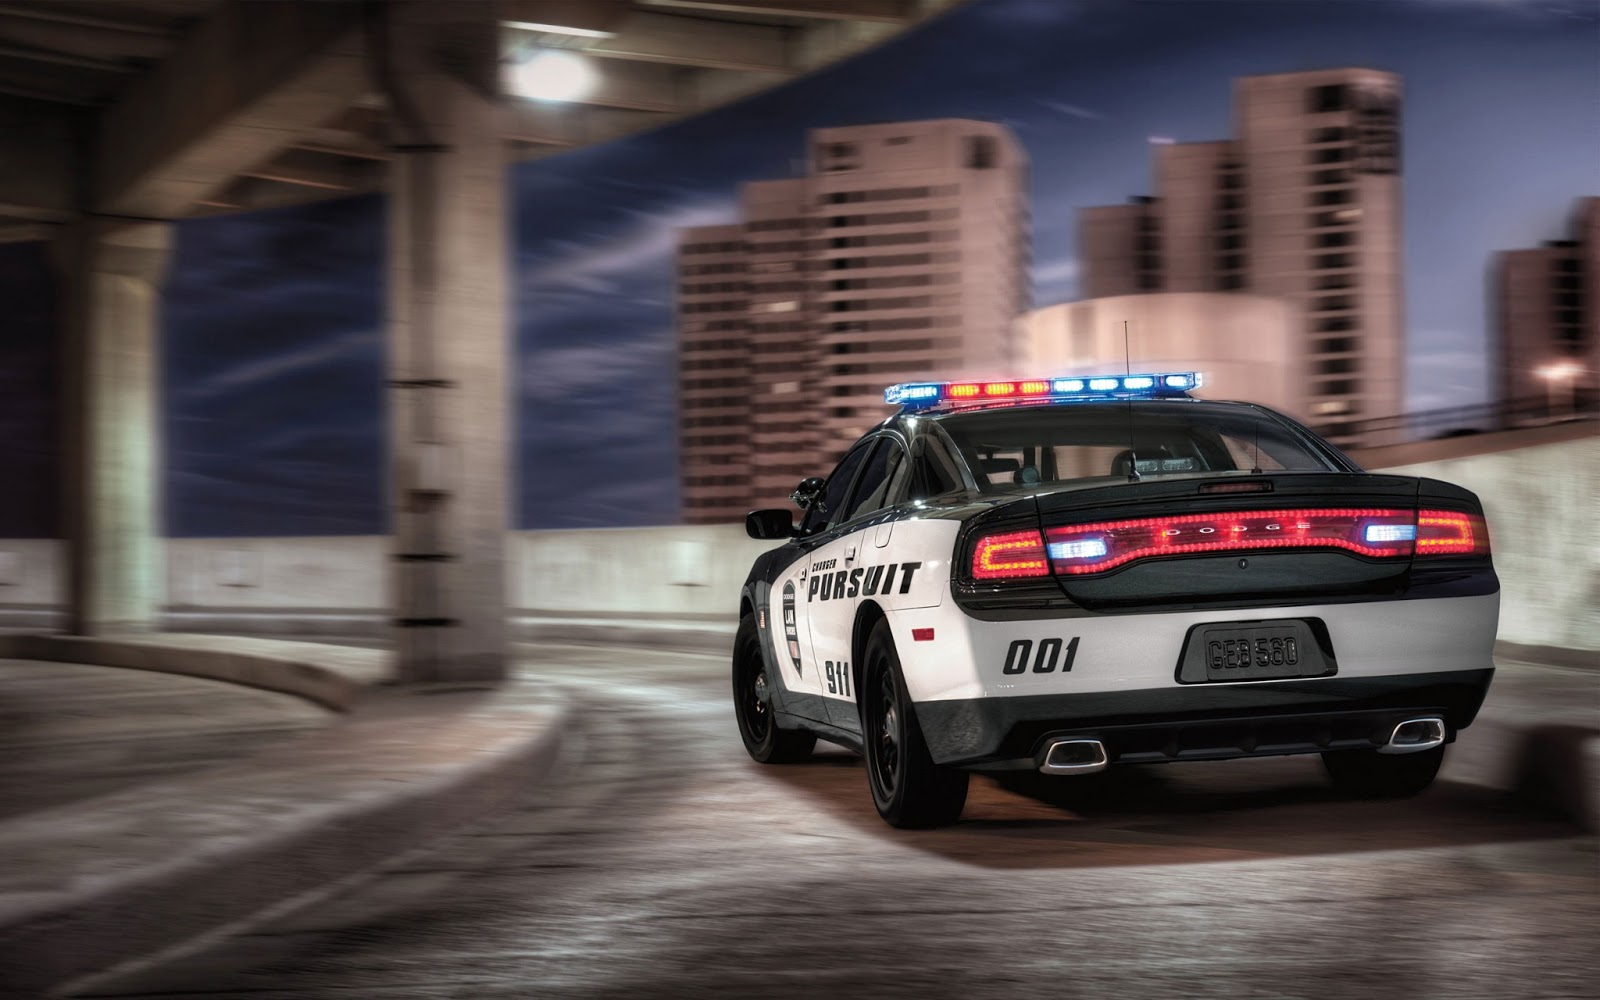 Wallpaper hd :2014 Dodge Charger Pursuit 2